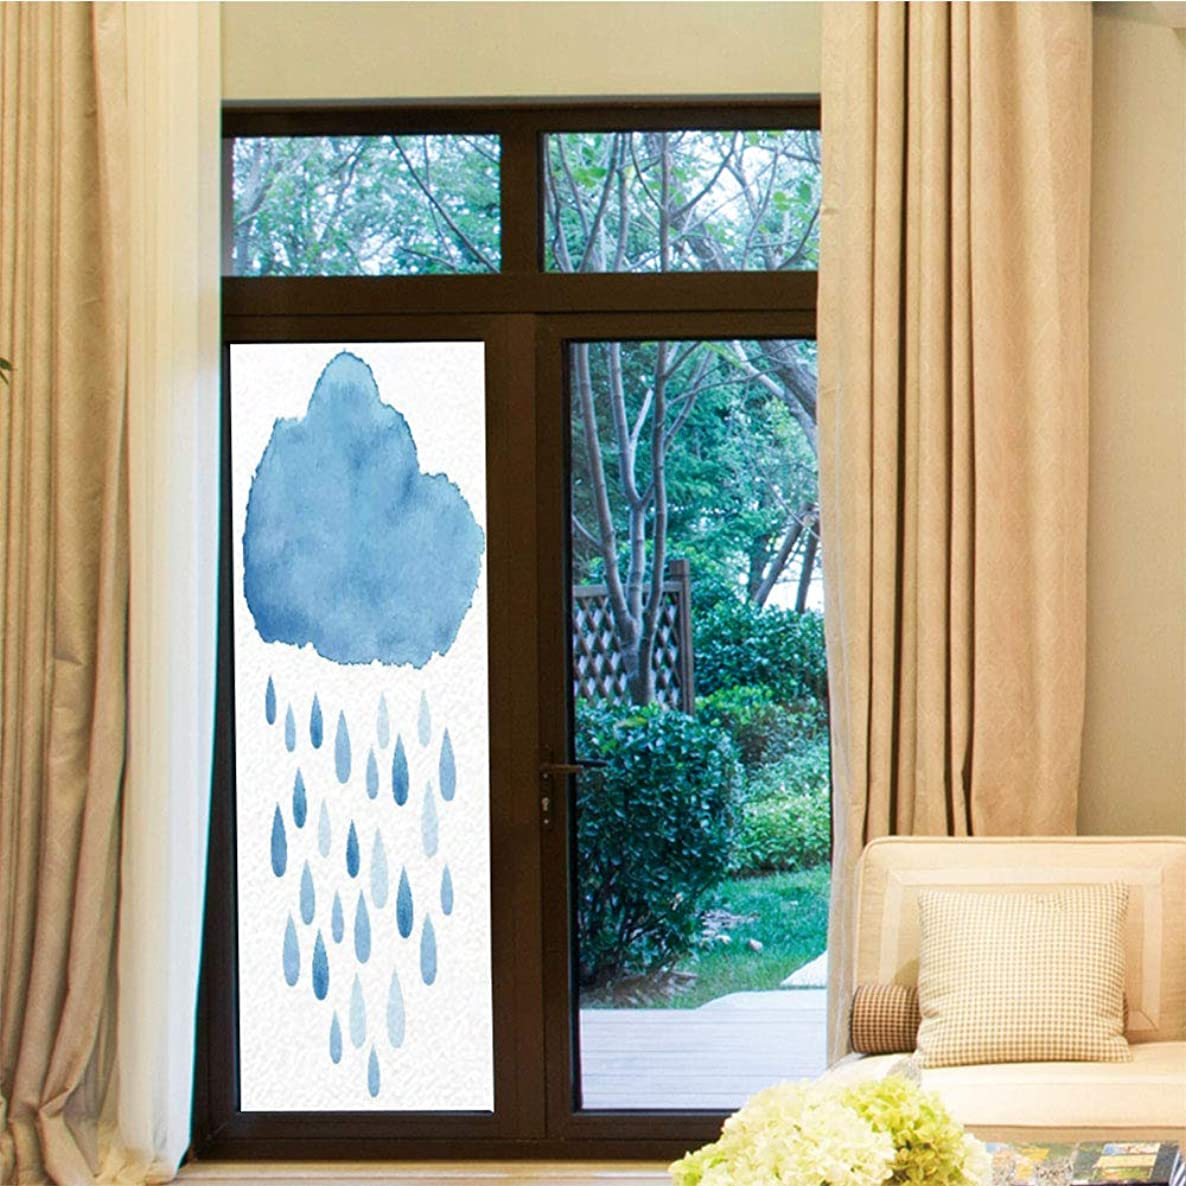 YOLIYANA Privacy Window Film,Apartment Decor,for Home Office School,Illustration of Rain Drops and Cloud in Watercolor,24''x70''